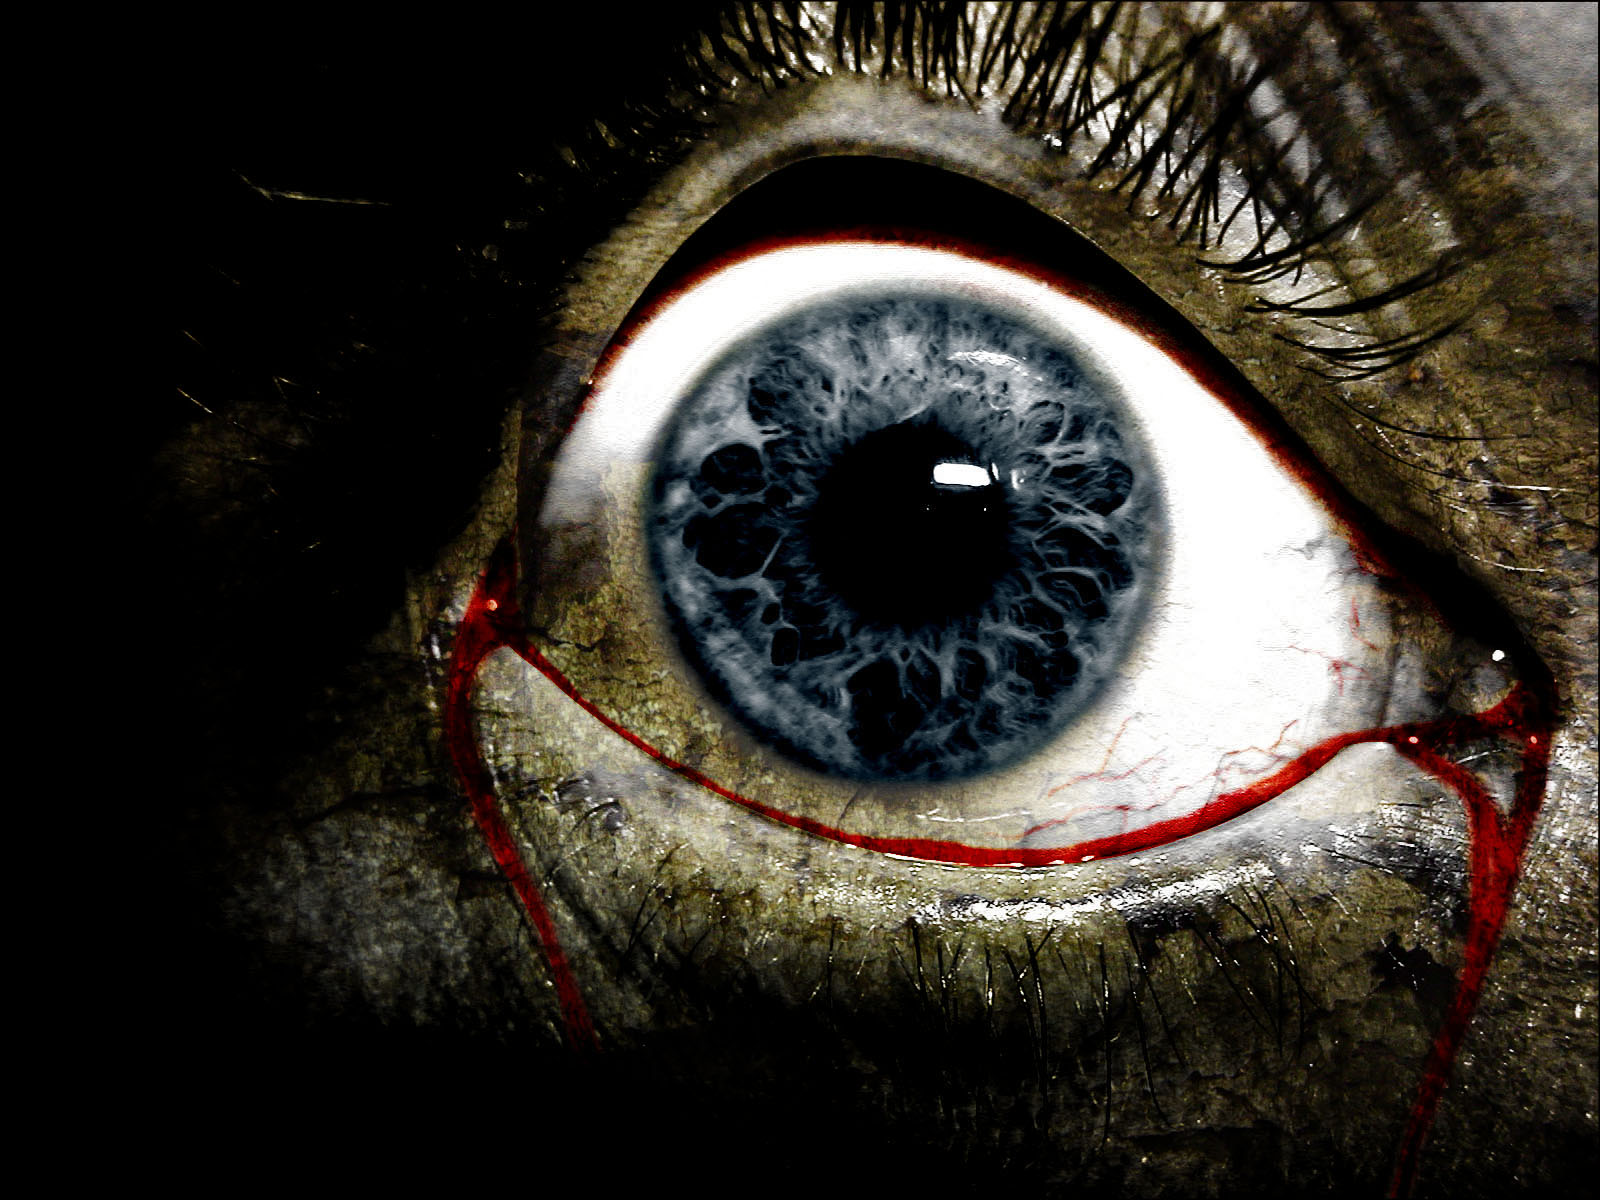 Creepy Hd Wallpaper: Scary Wallpapers, Pictures, Images